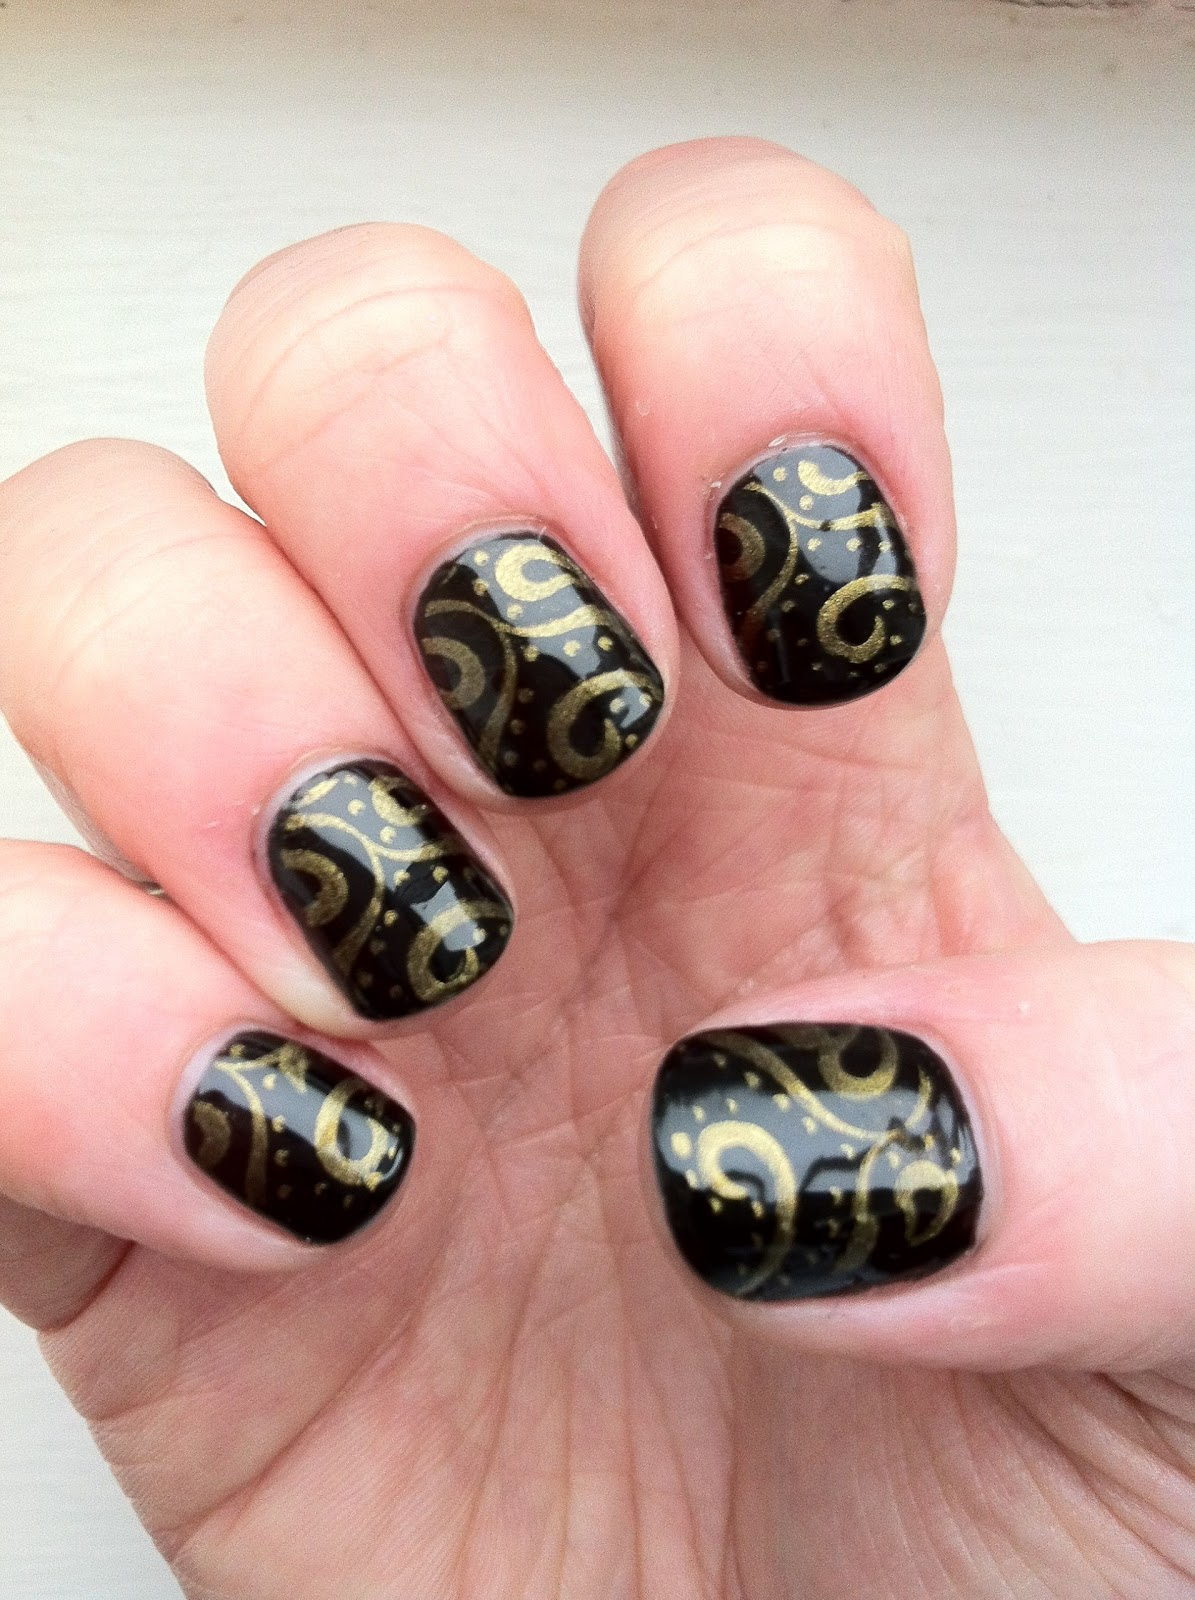 Brush up and Polish up!: CND Shellac Nail Art - Blackpool and Konad ...